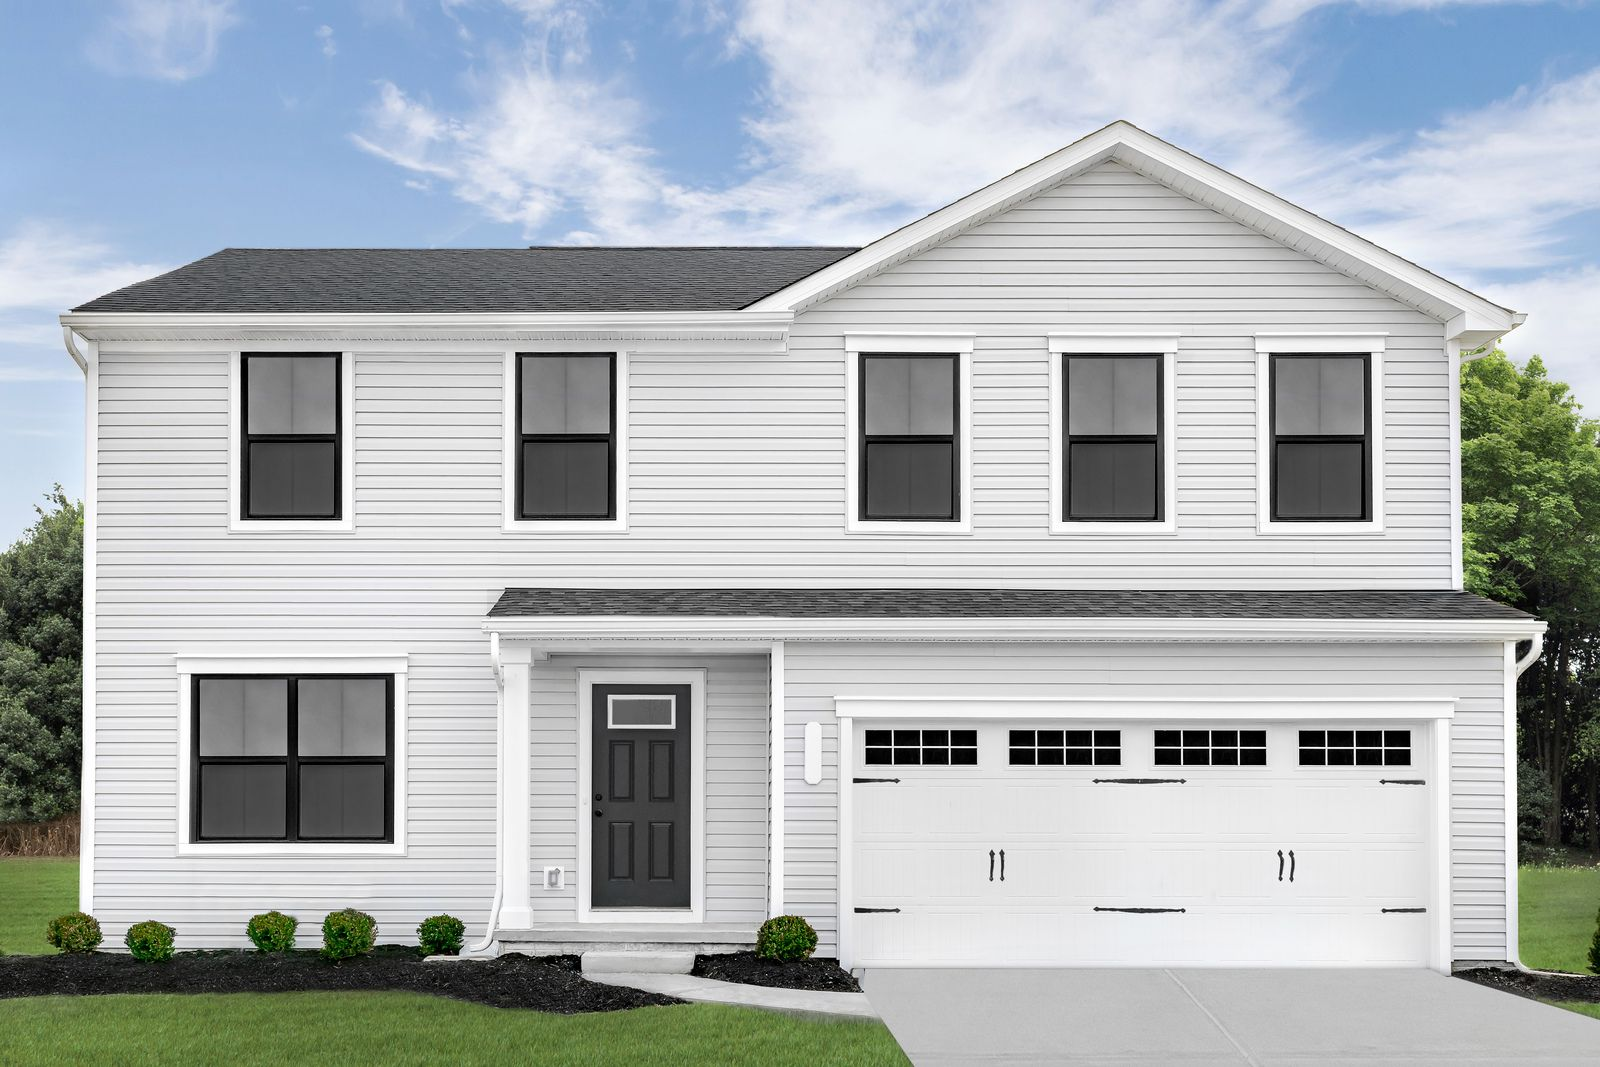 JOIN THE RIVER RUN LANDING VIP LIST TODAY!:2-story and ranch homes—lowest priced for new in Midview Schools! 3-5 bedrooms, full basements, and minutes to I-480.Click here to join the VIP List!